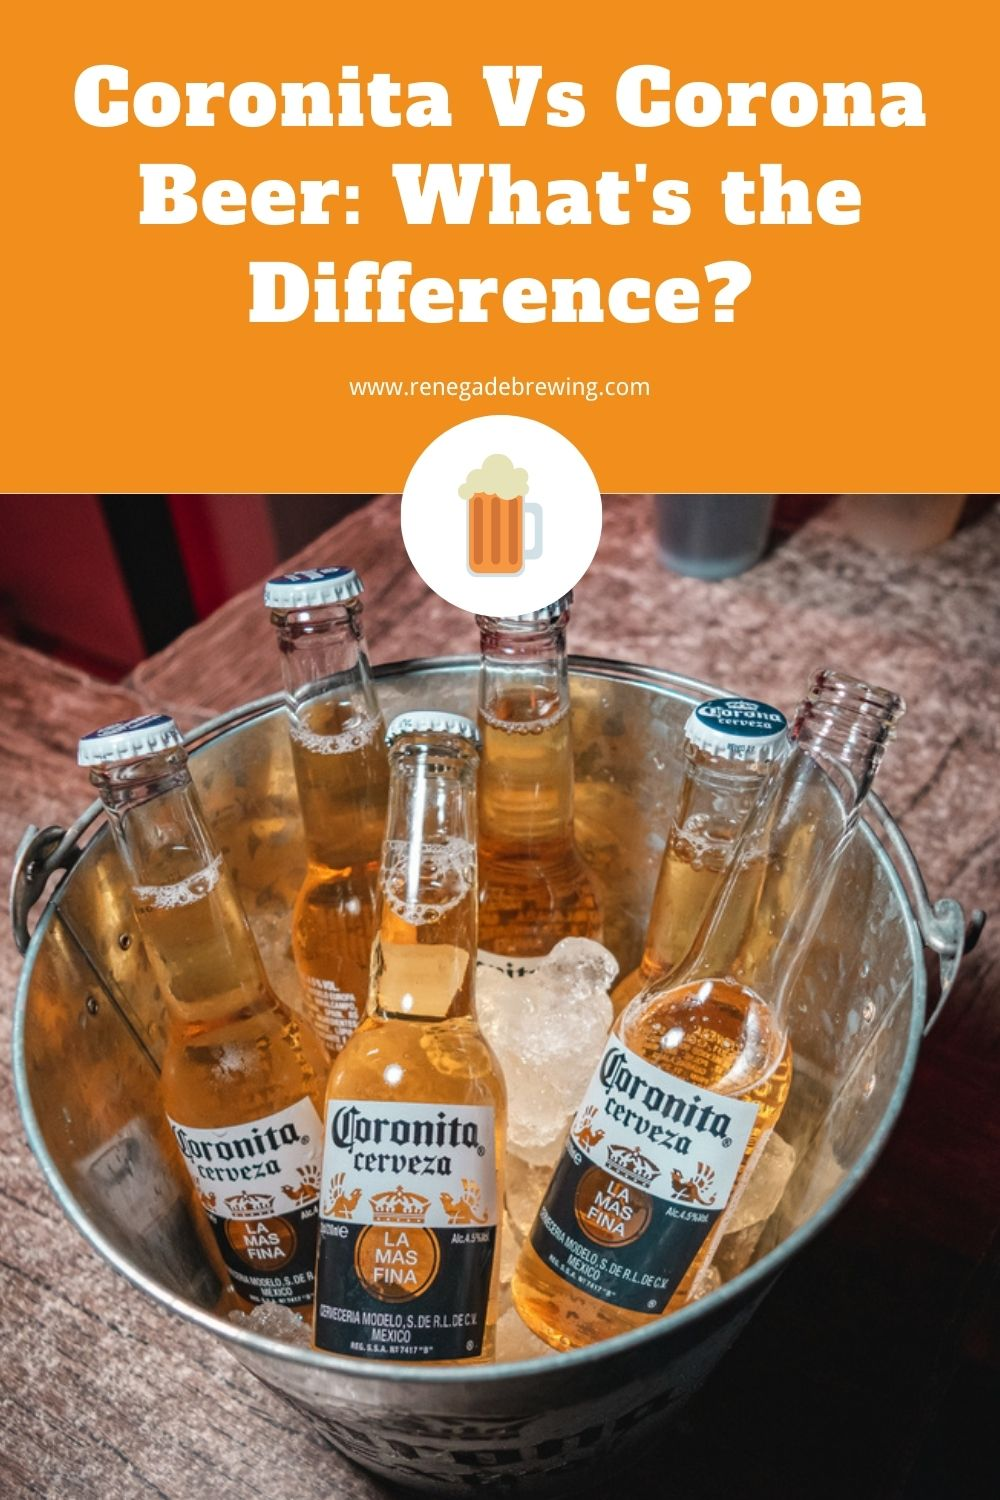 Coronita Vs Corona Beer What's the Difference 2